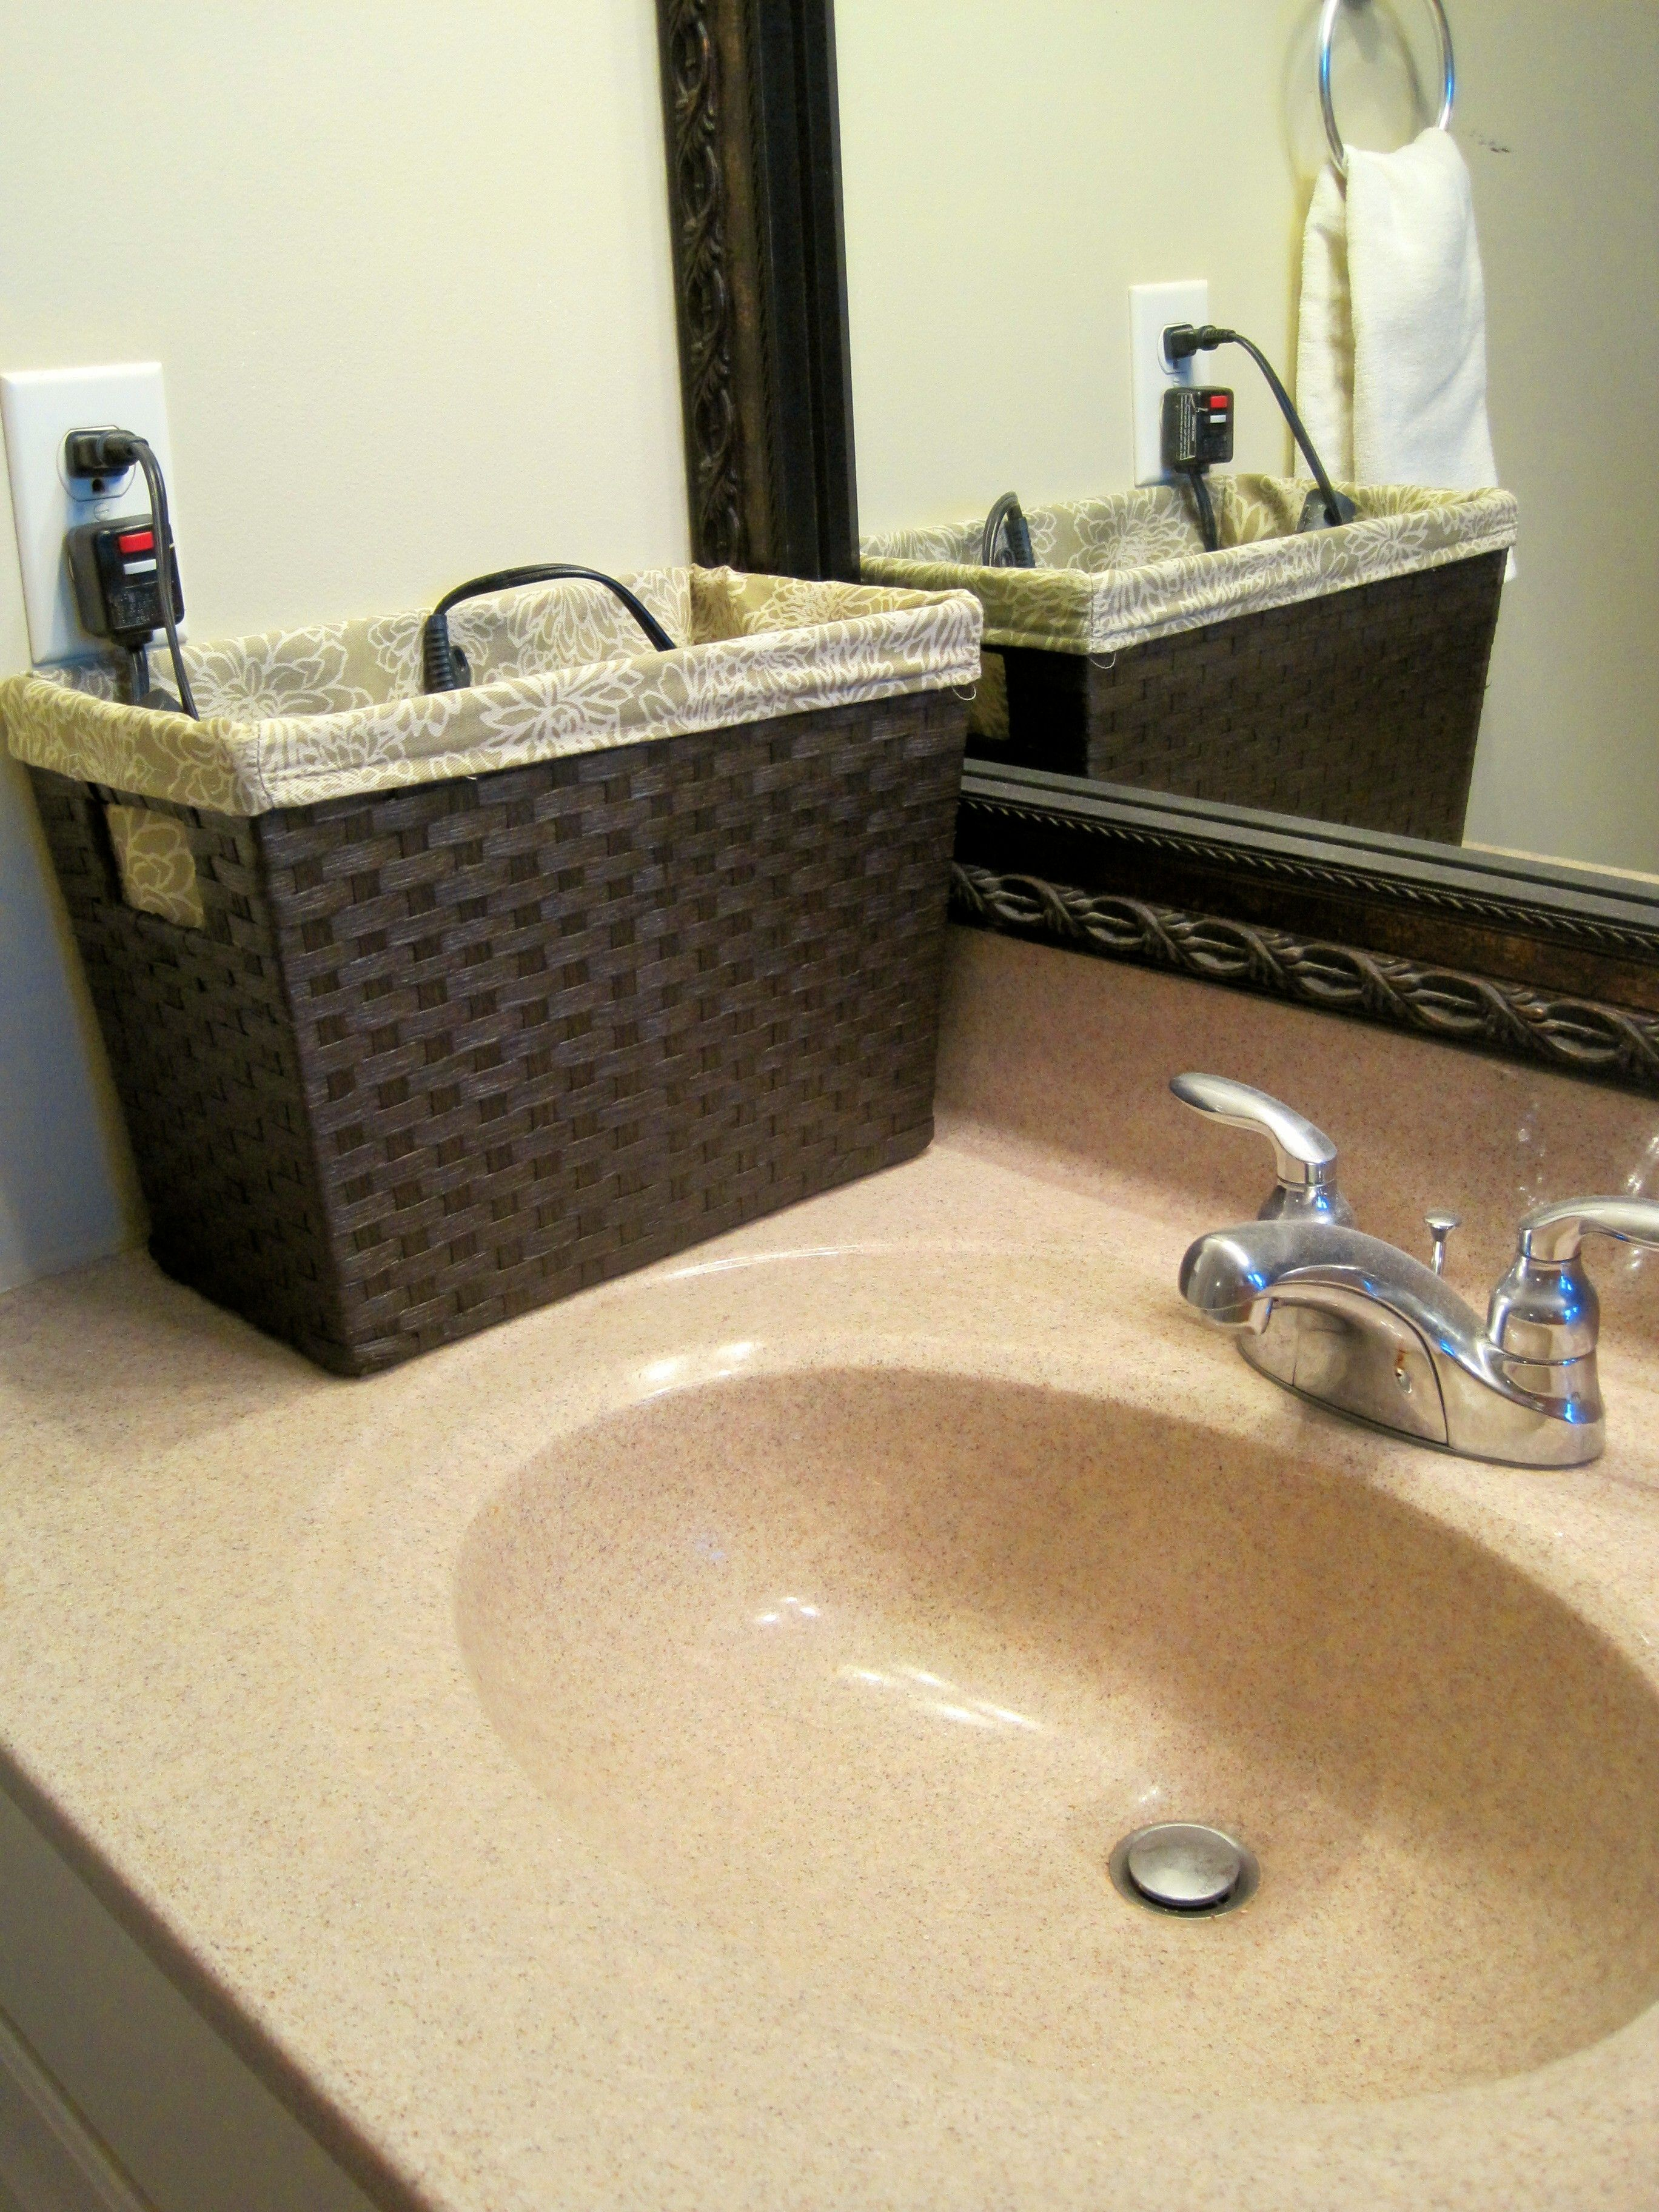 Simple Solutions Bathroom Organization And 31 Days To Clean (I